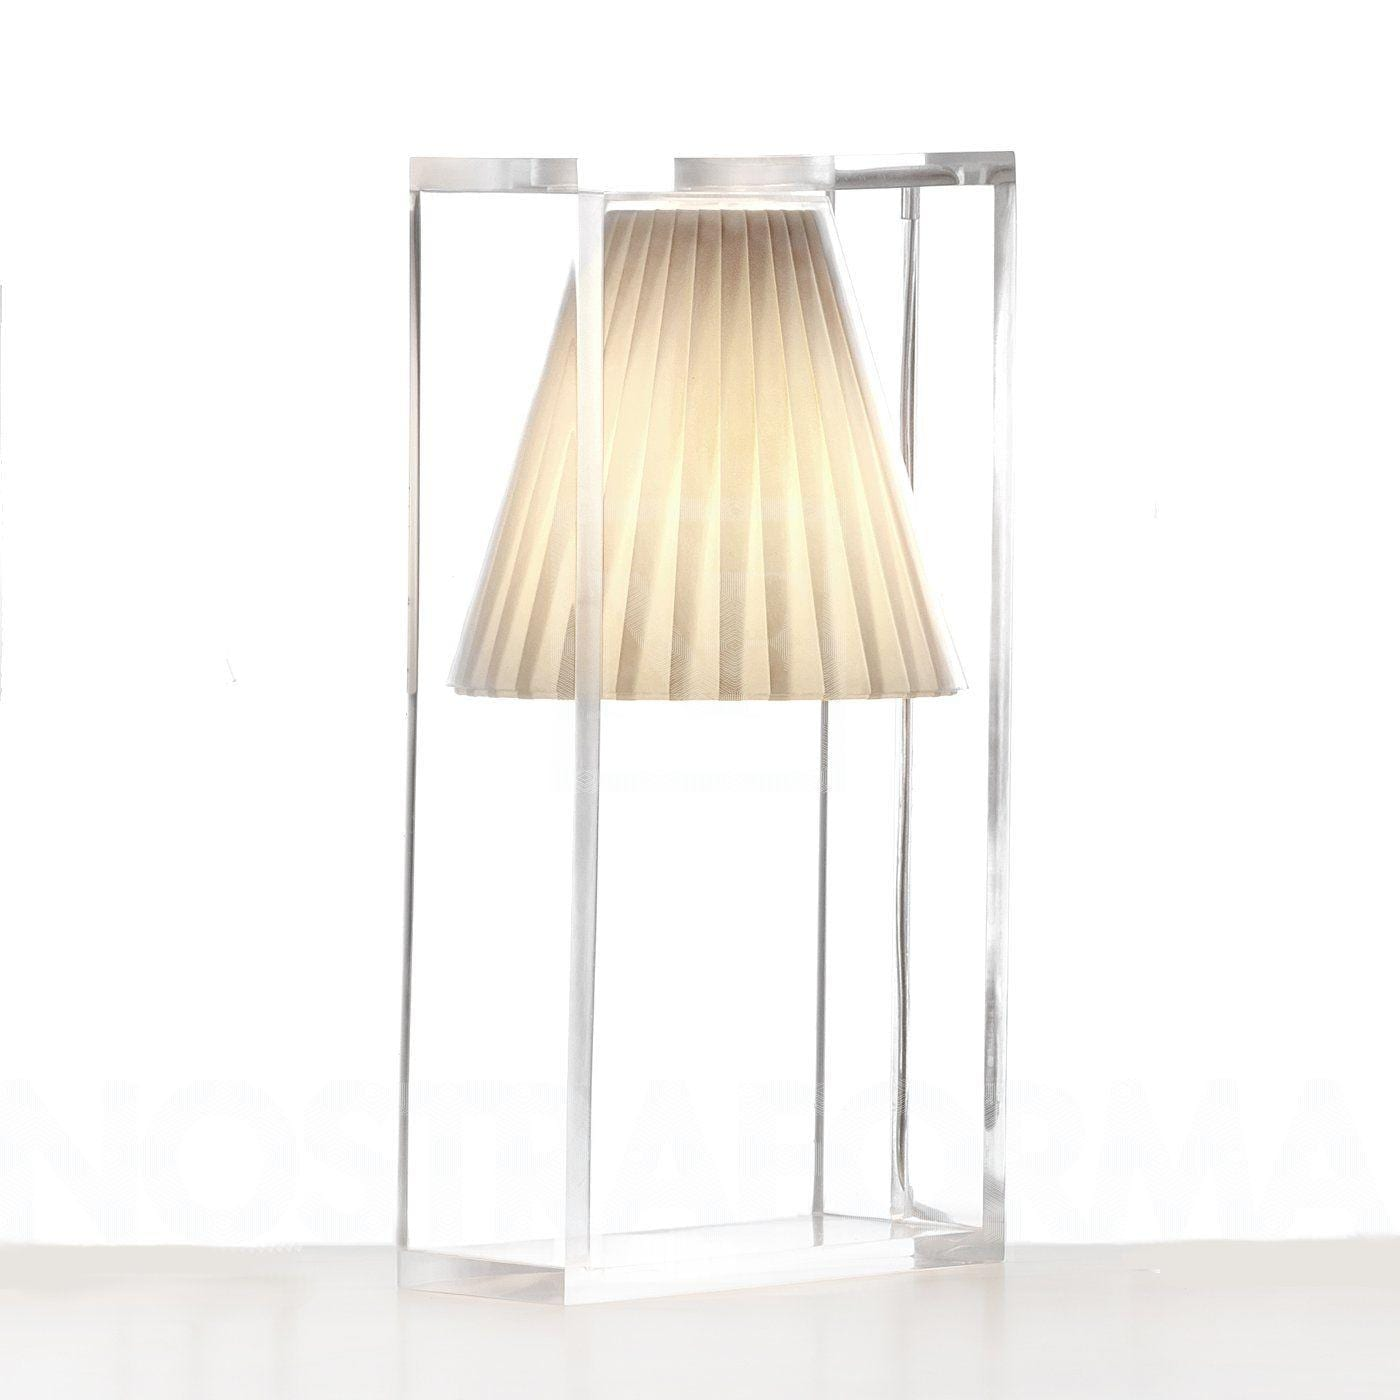 Kartell Light Air table - fabric diffuser | LiD Design